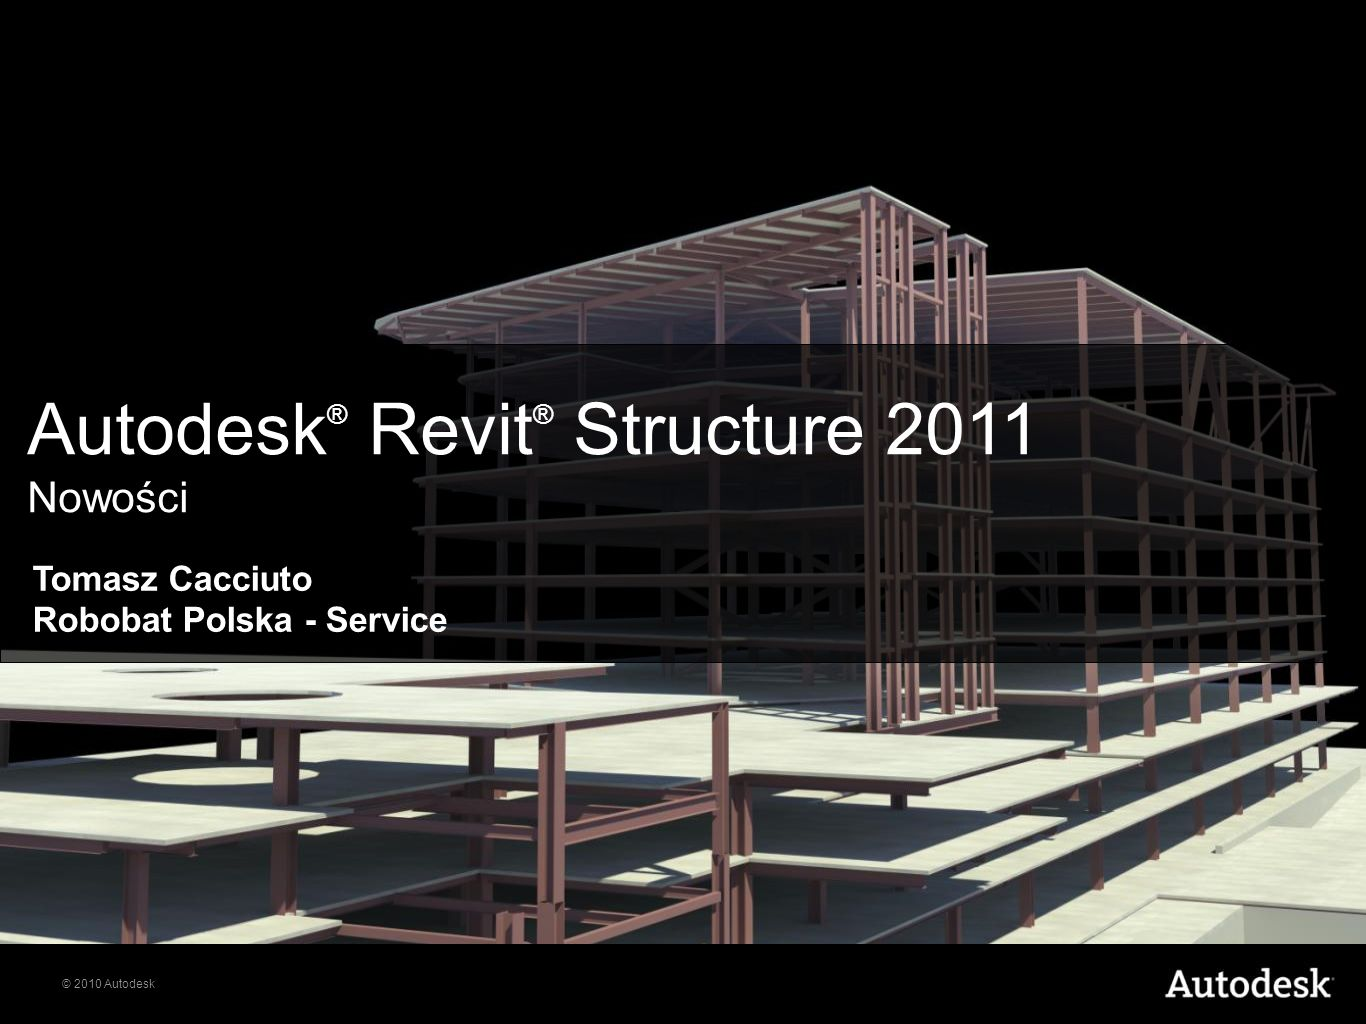 Autodesk® Revit® Structure 2011